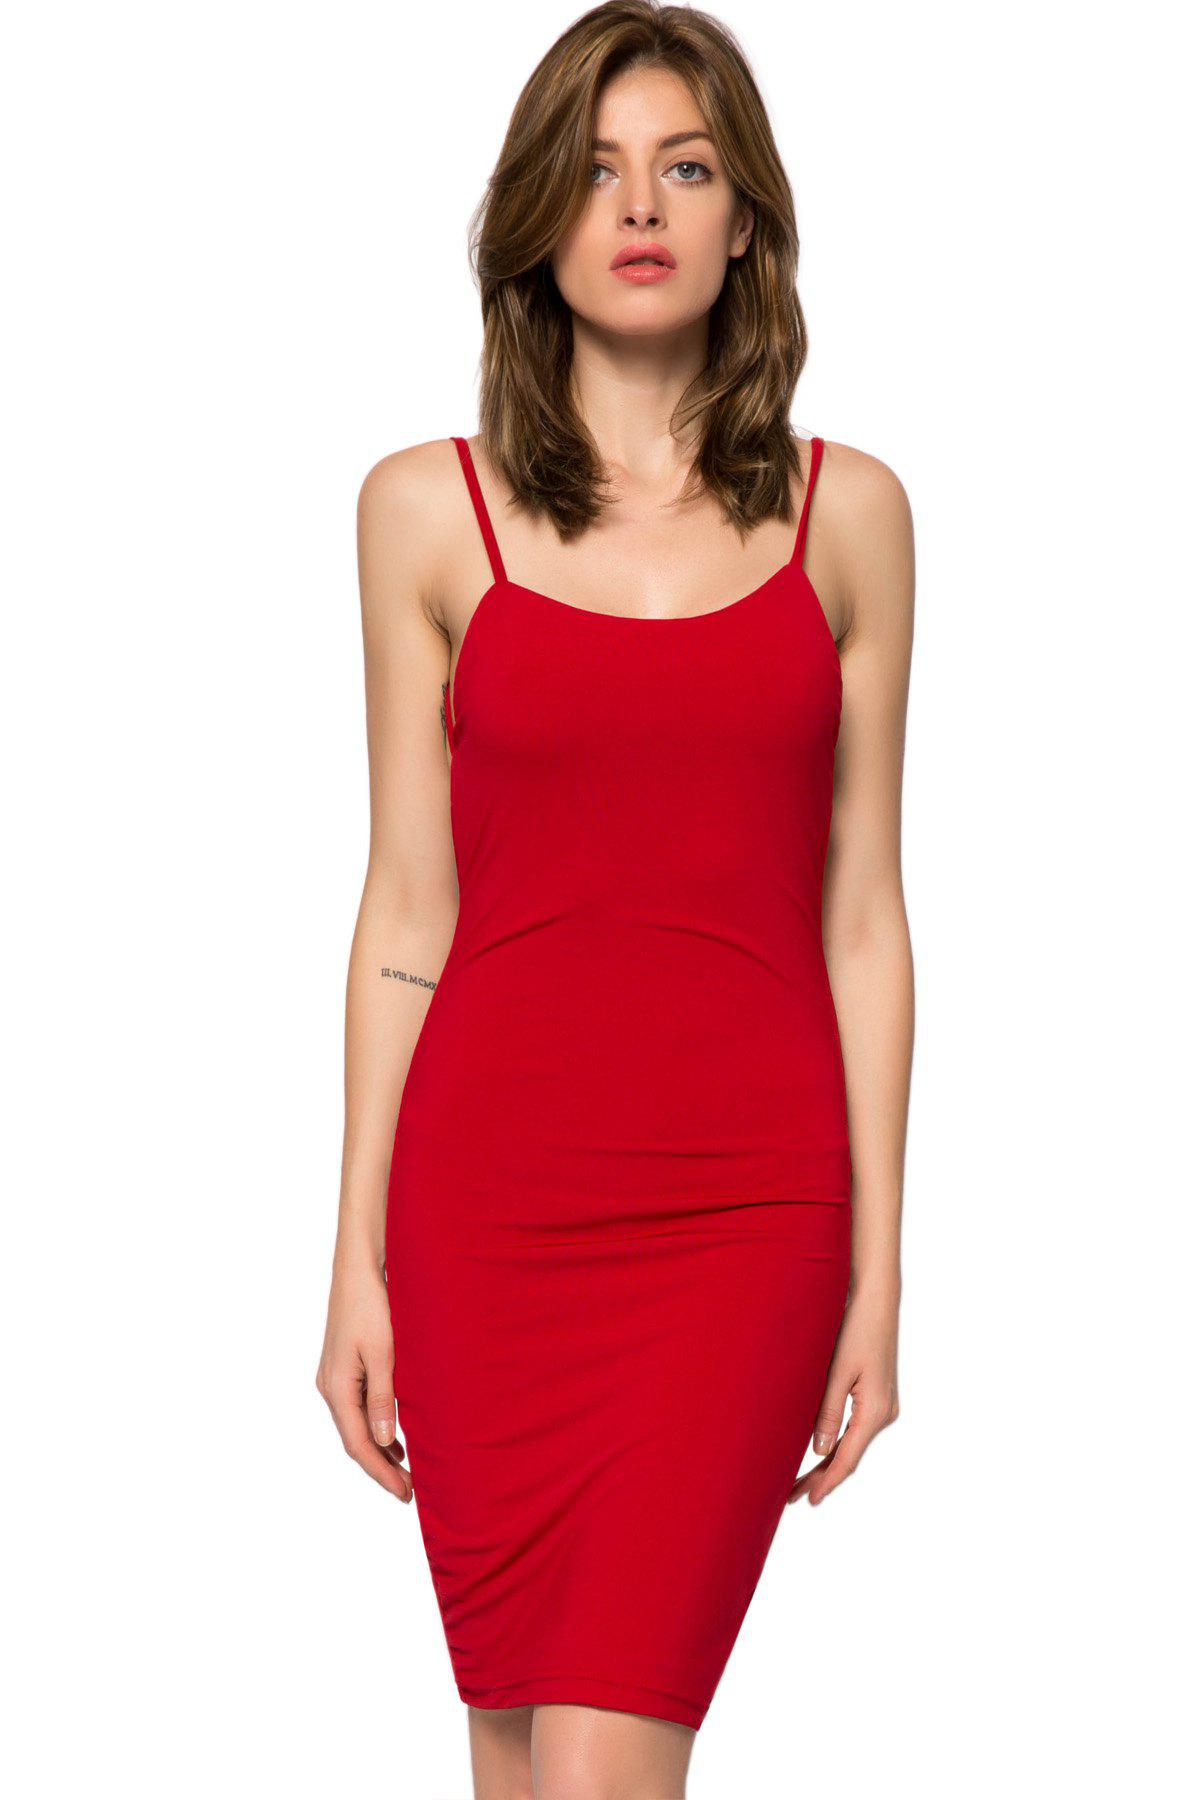 Backless Spaghetti Straps Bodycon Dress - RED 2XL